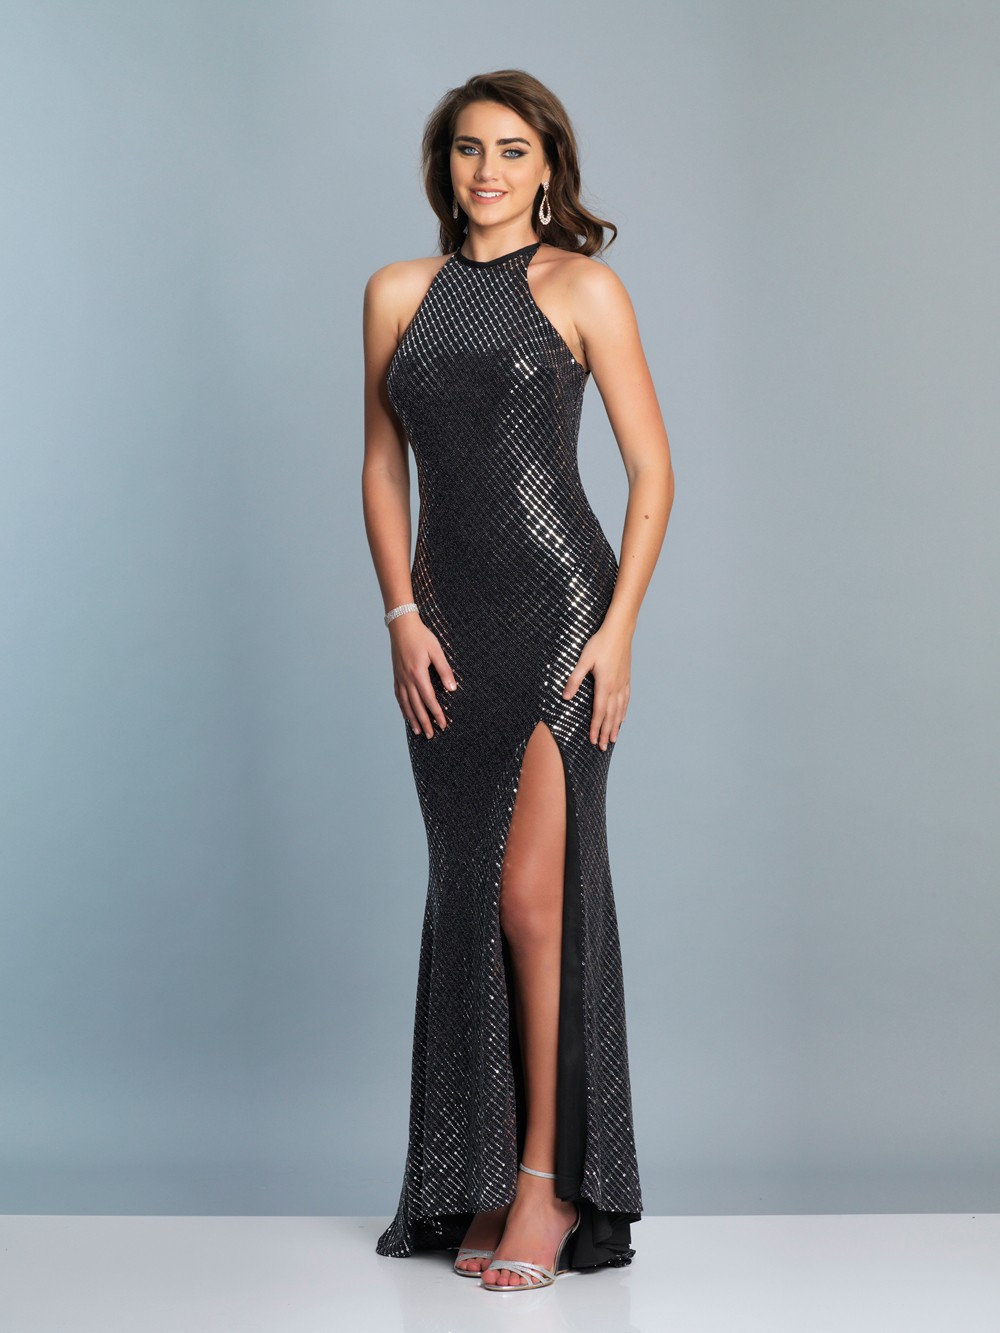 1504cc7e3bf Dave and Johnny A6919 Strappy Back Metallic Prom Dress